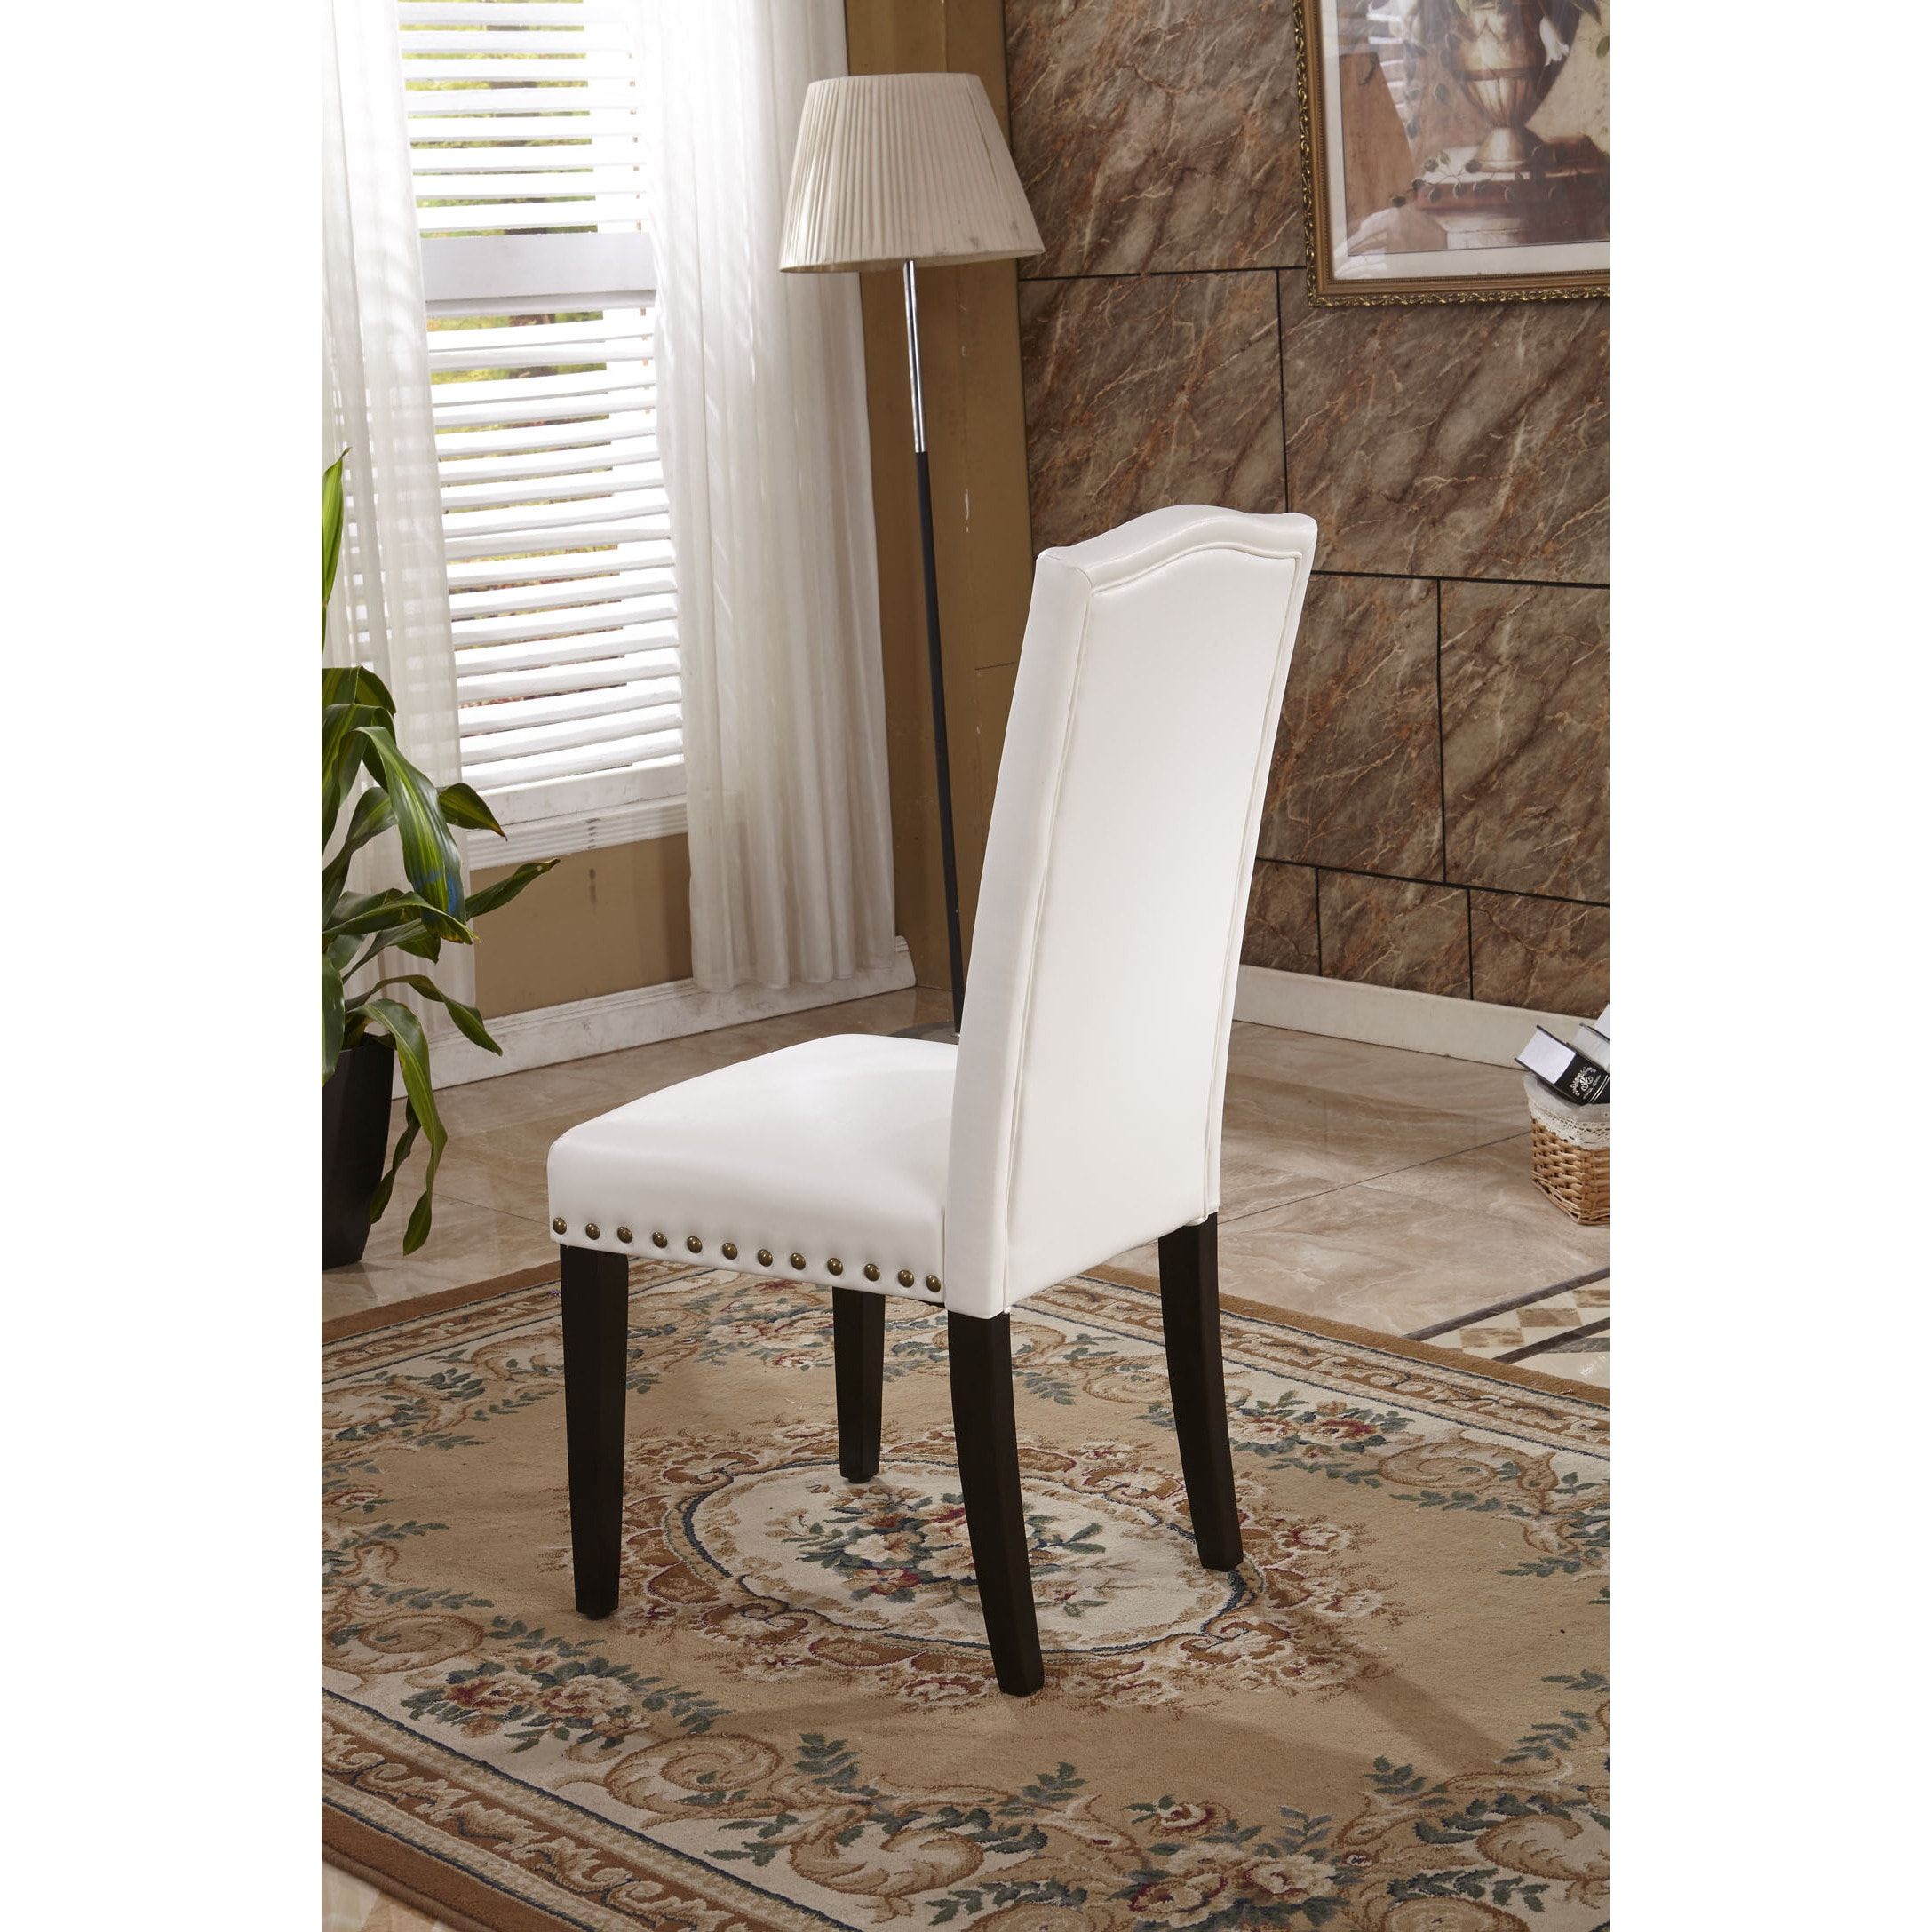 Delicieux Shop Classic Faux Leather Parson Chairs With Nailhead Trim (Set Of 2)    Free Shipping Today   Overstock.com   9972850